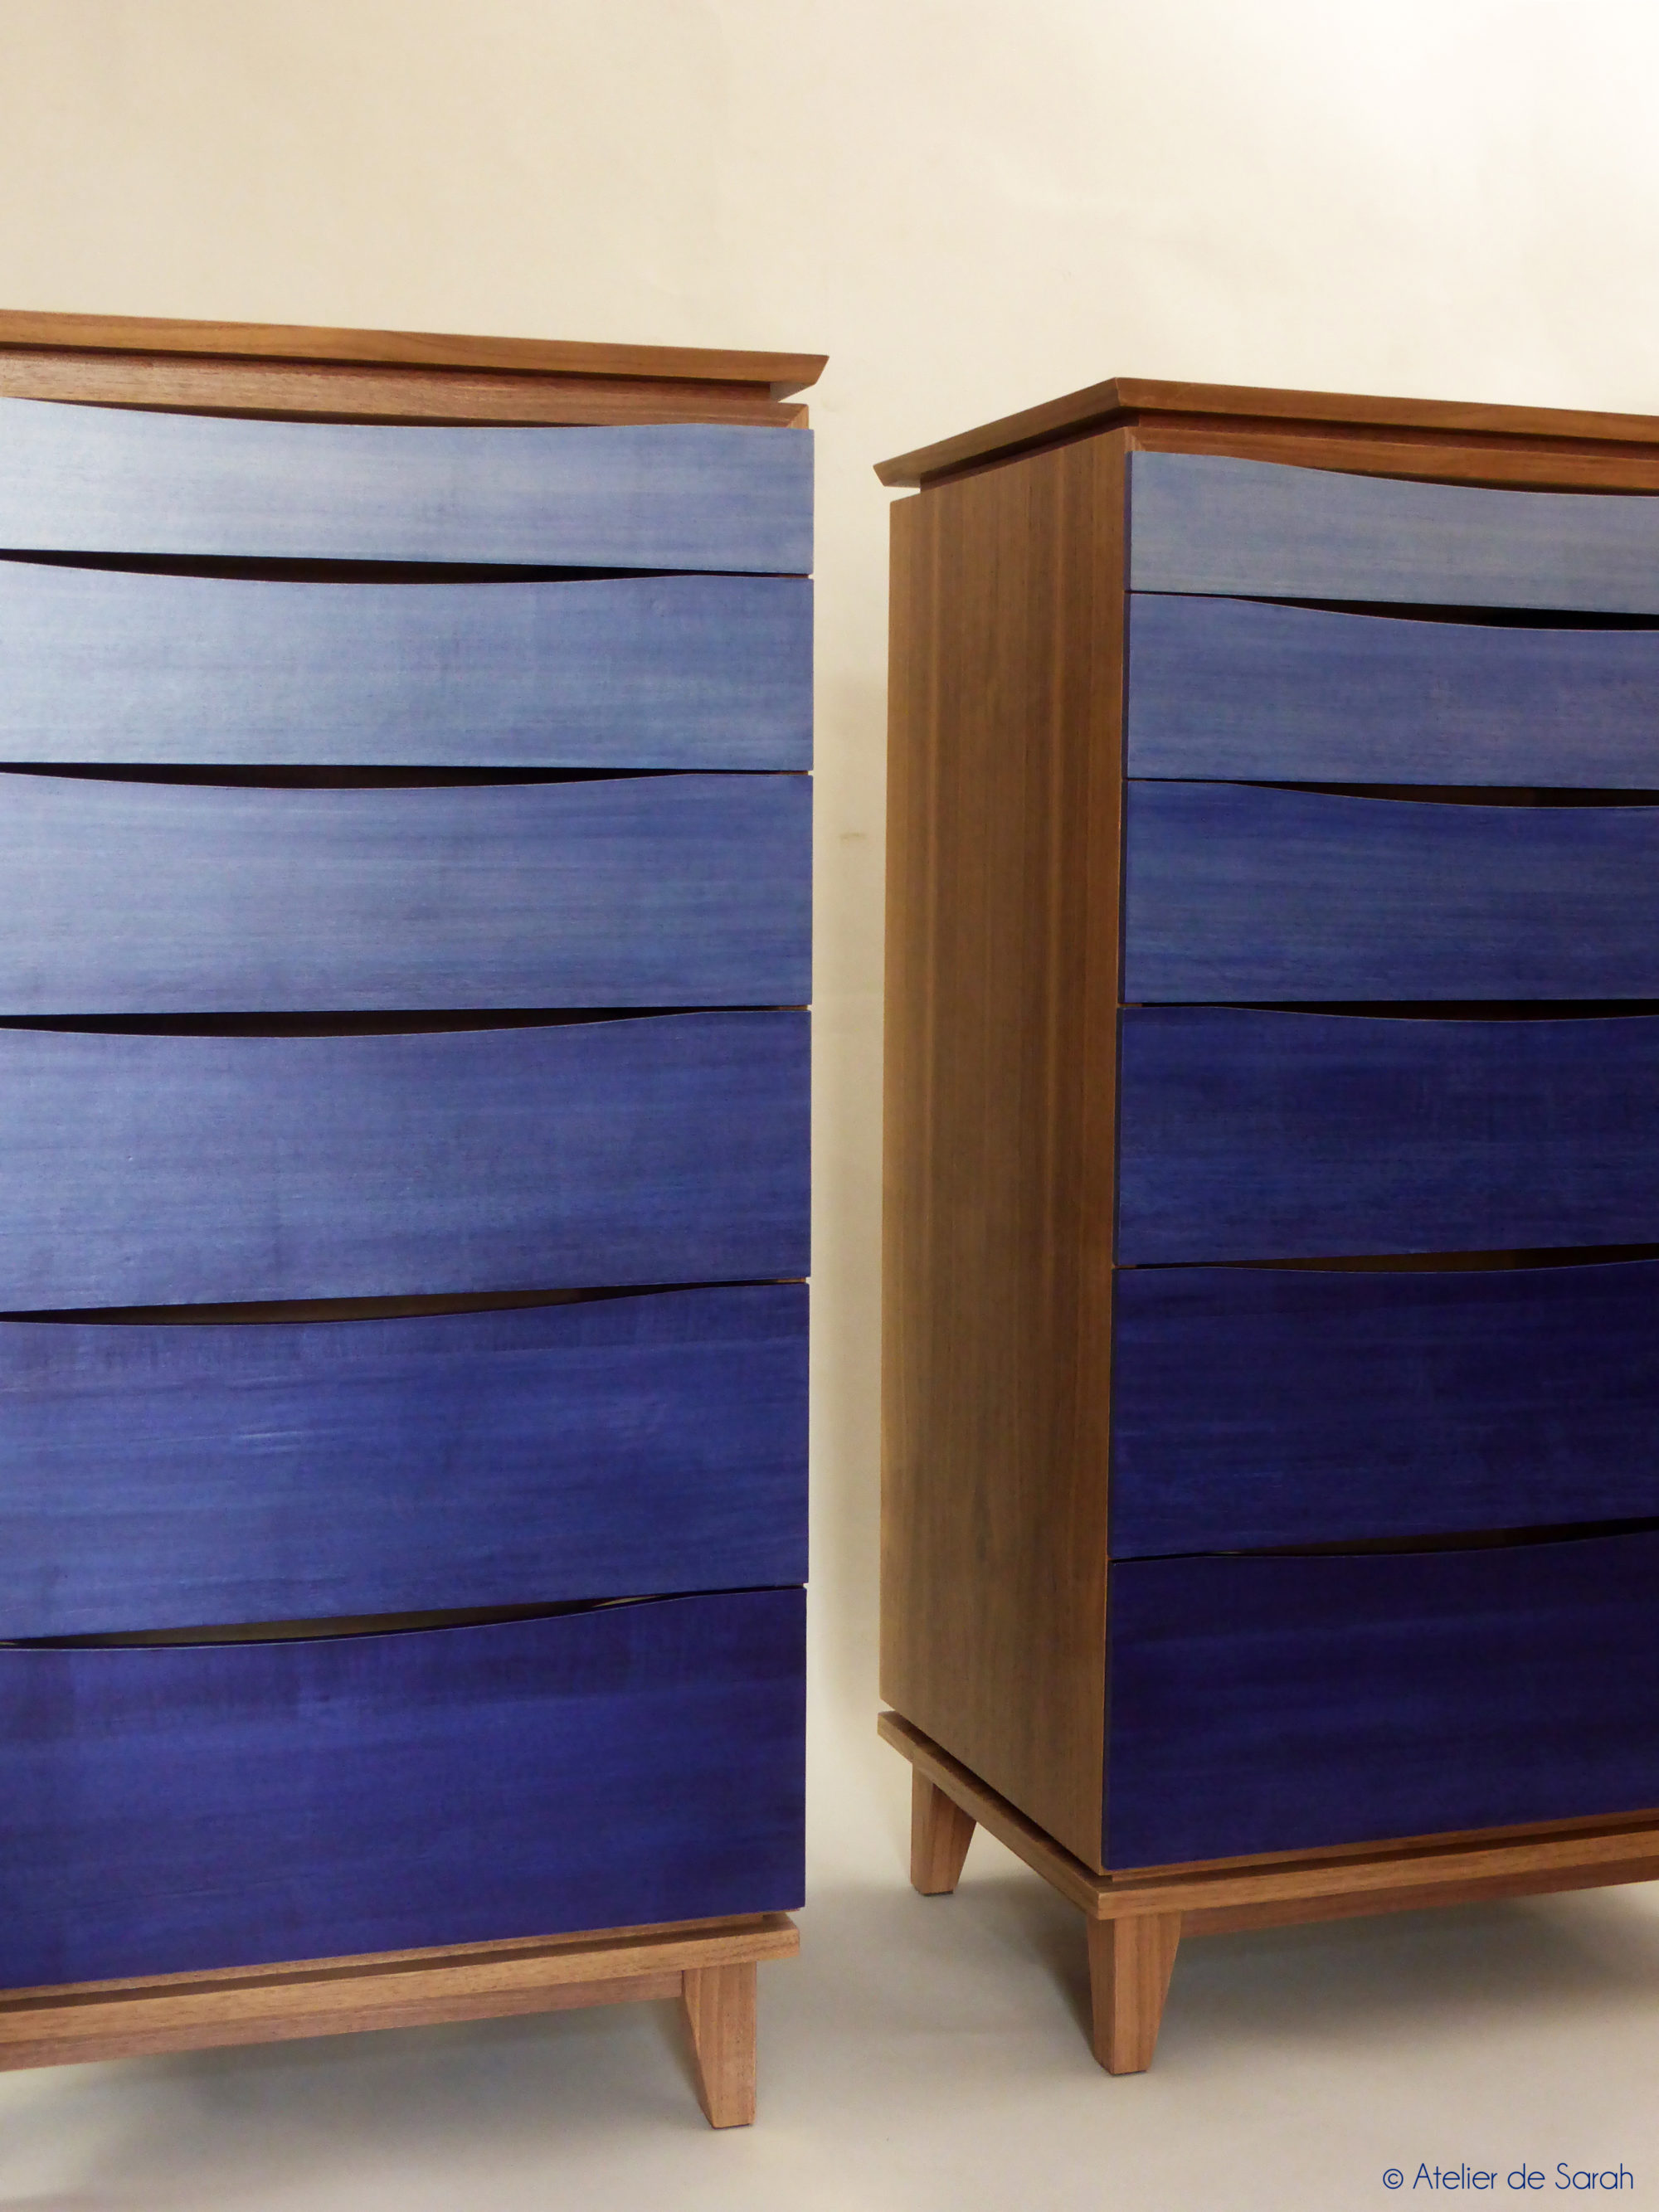 pair-of-chests-of-drawers-blues-brothers-with-facades-stained-in-shades-of-blue